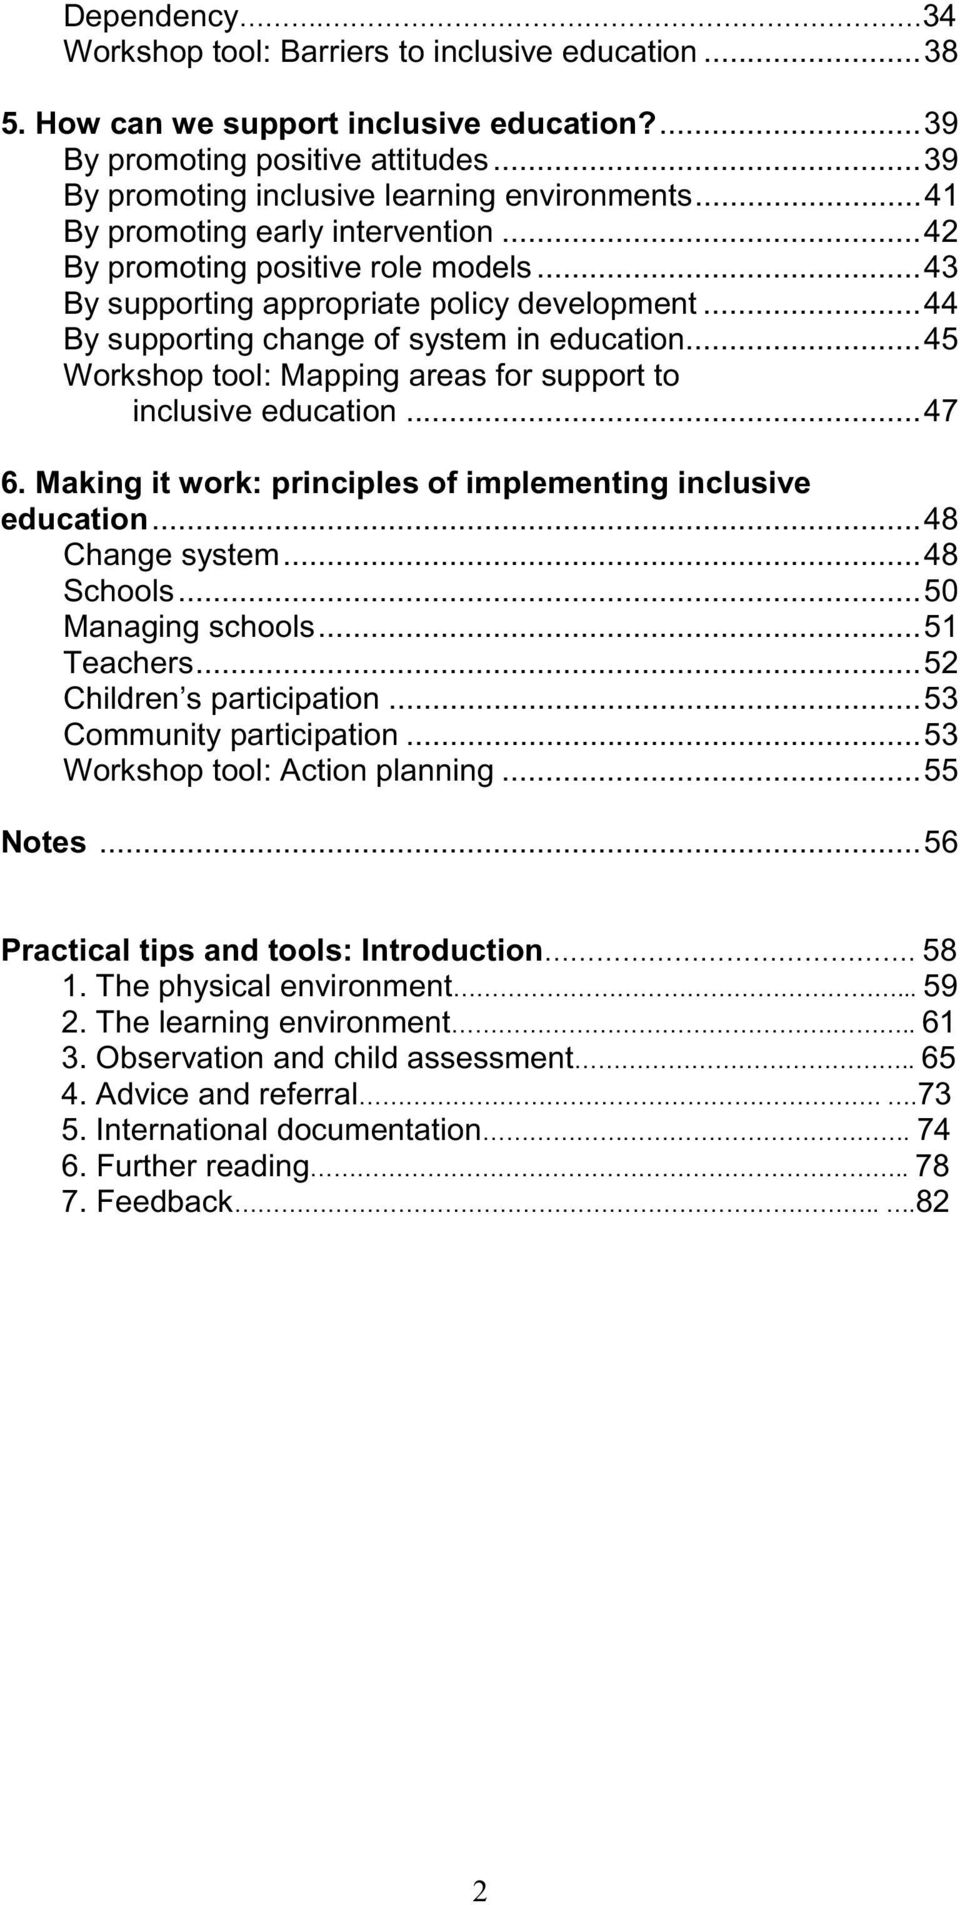 ..45 Workshop tool: Mapping areas for support to inclusive education...47 6. Making it work: principles of implementing inclusive education...48 Change system...48 Schools...50 Managing schools.